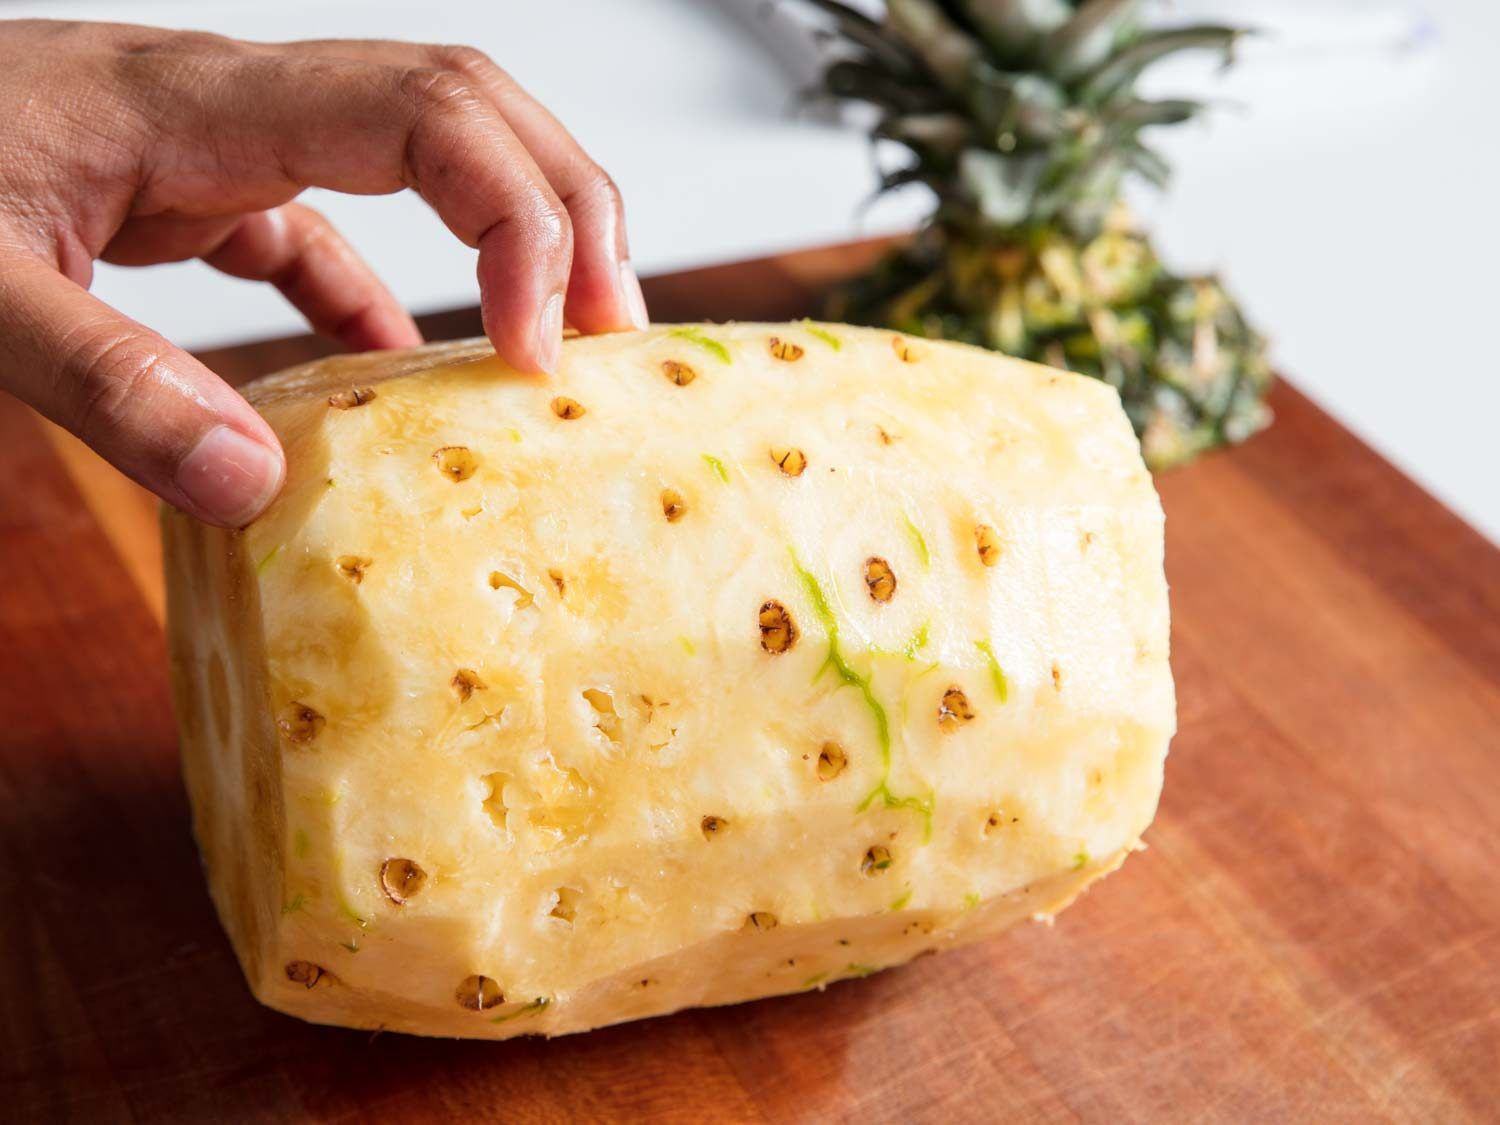 A pineapple with the sides trimmed off on a cutting board.